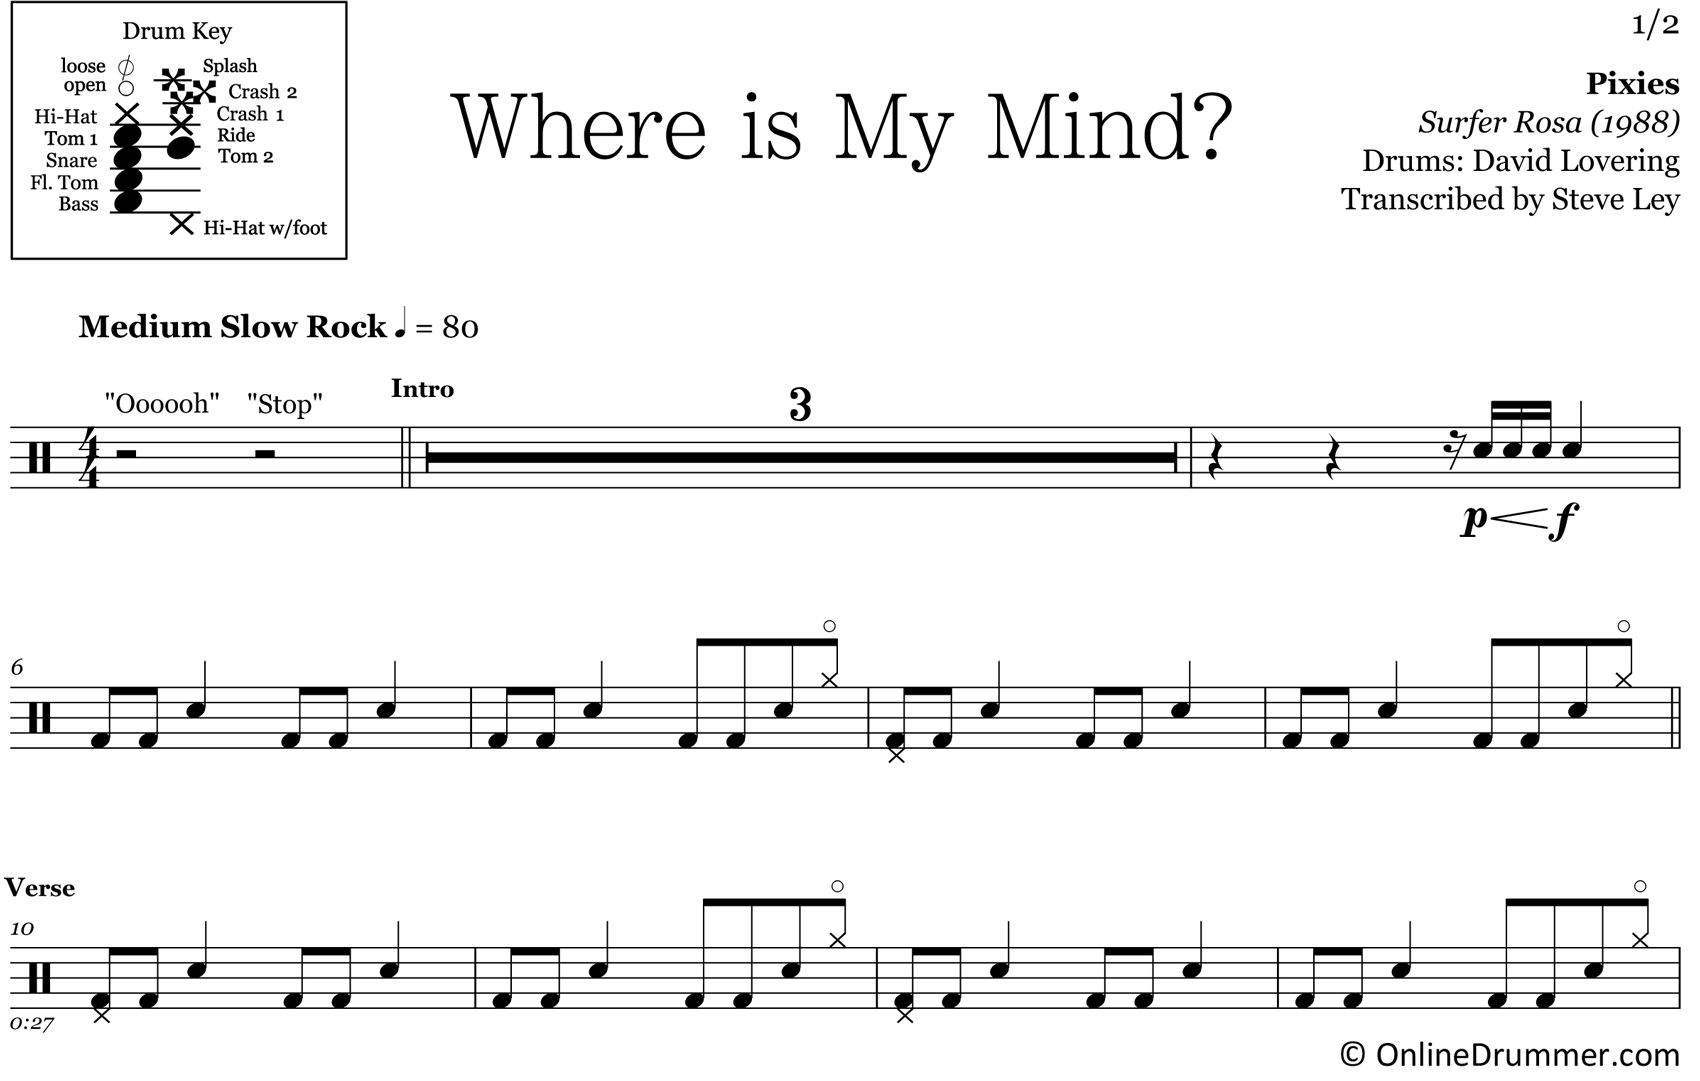 Where Is My Mind? - Pixies - Drum Sheet Music